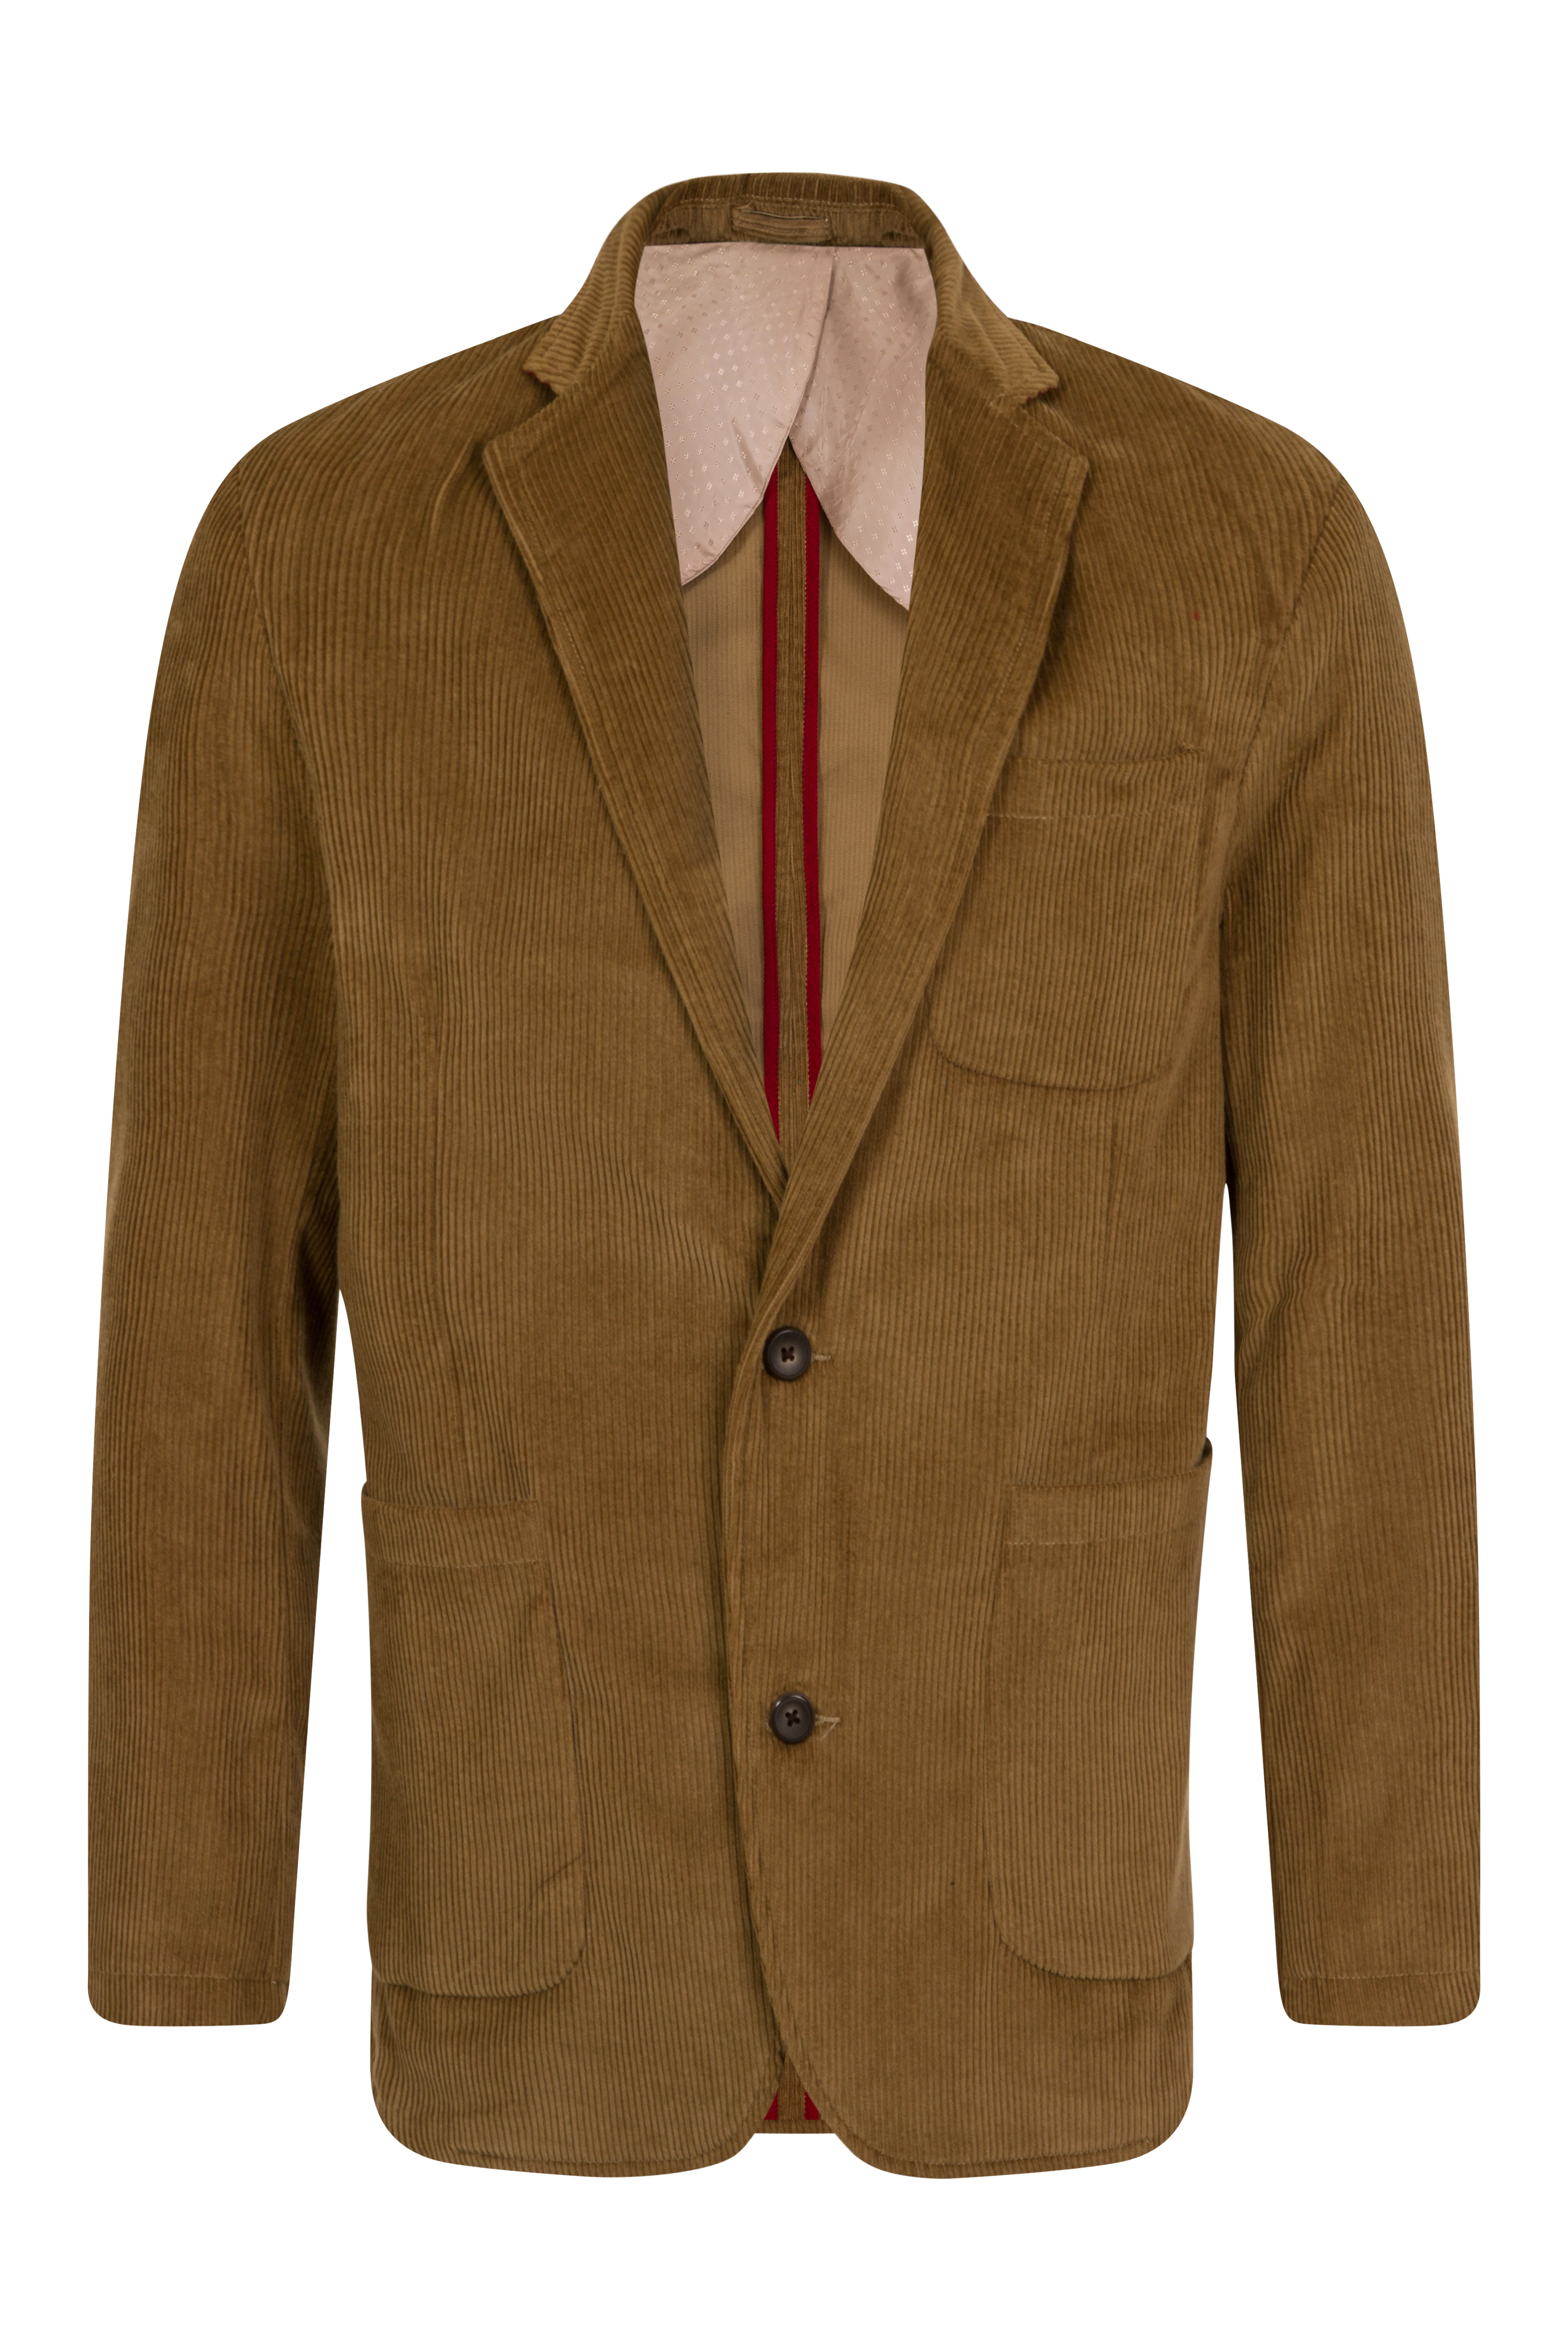 Find mens corduroy blazers at ShopStyle. Shop the latest collection of mens corduroy blazers from the most popular stores - all in one place.